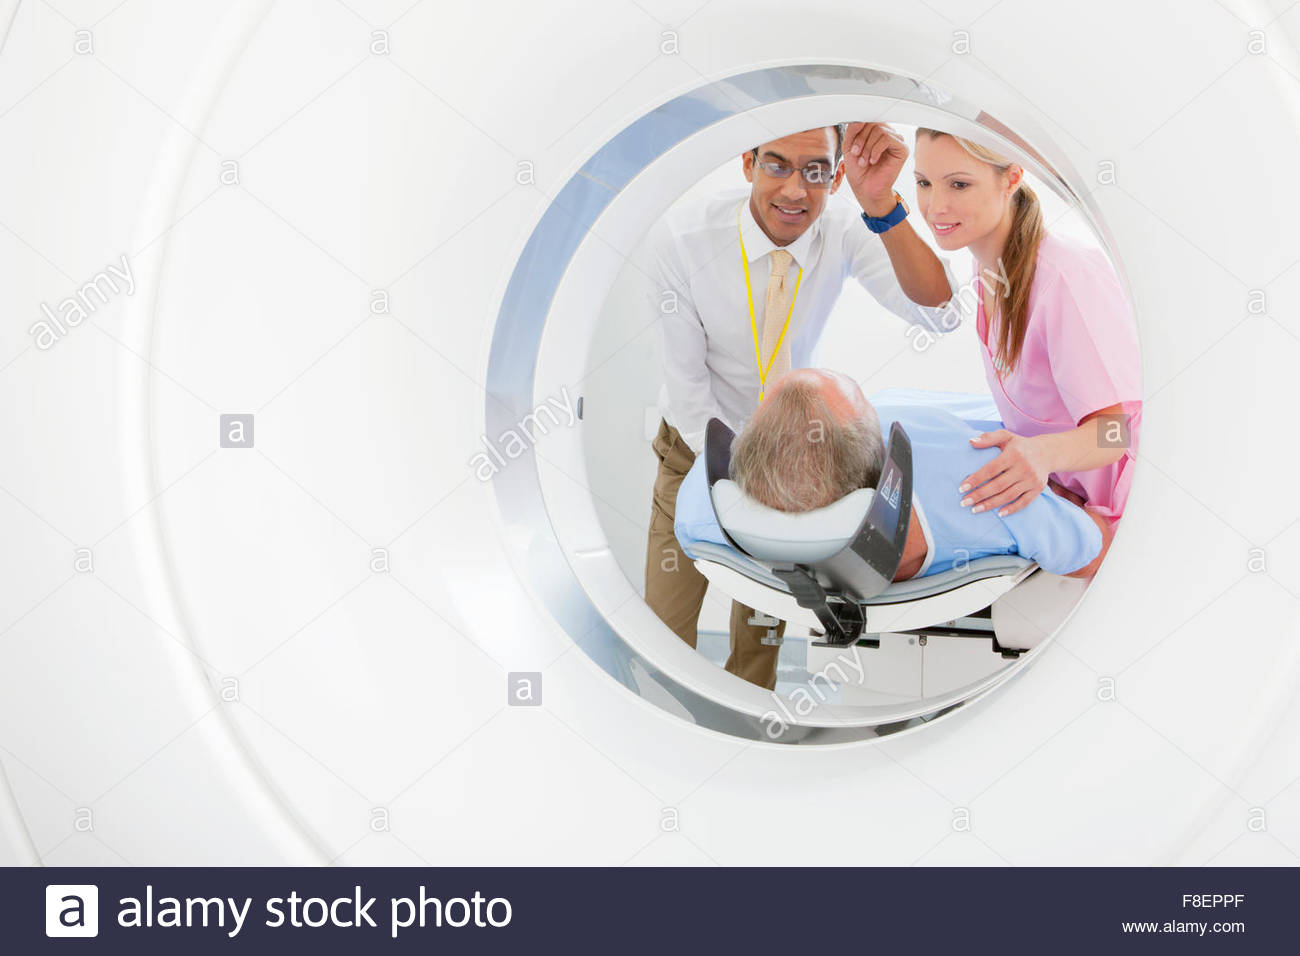 Doctor and technician nurse preparing patient at CT scanner tube in hospital - Stock Image